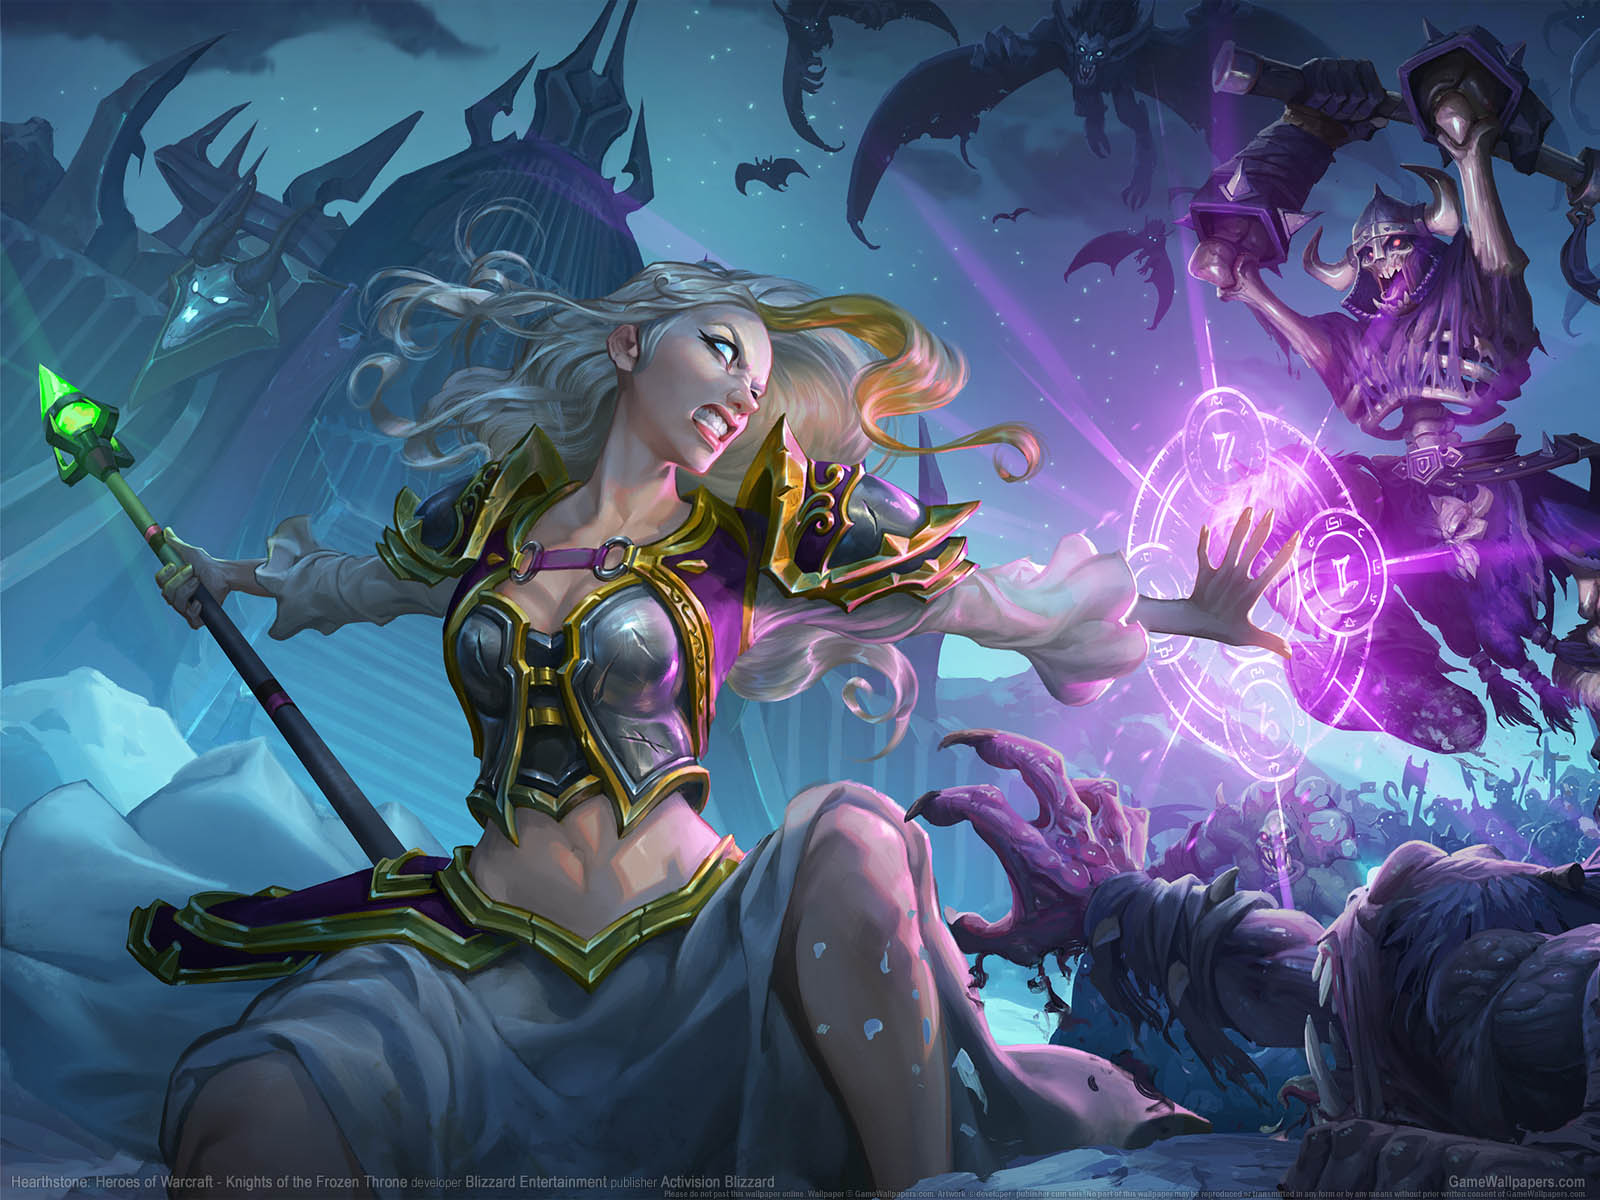 Hearthstone: Heroes of Warcraft - Knights of the Frozen Throneνmmer=01 achtergrond  1600x1200